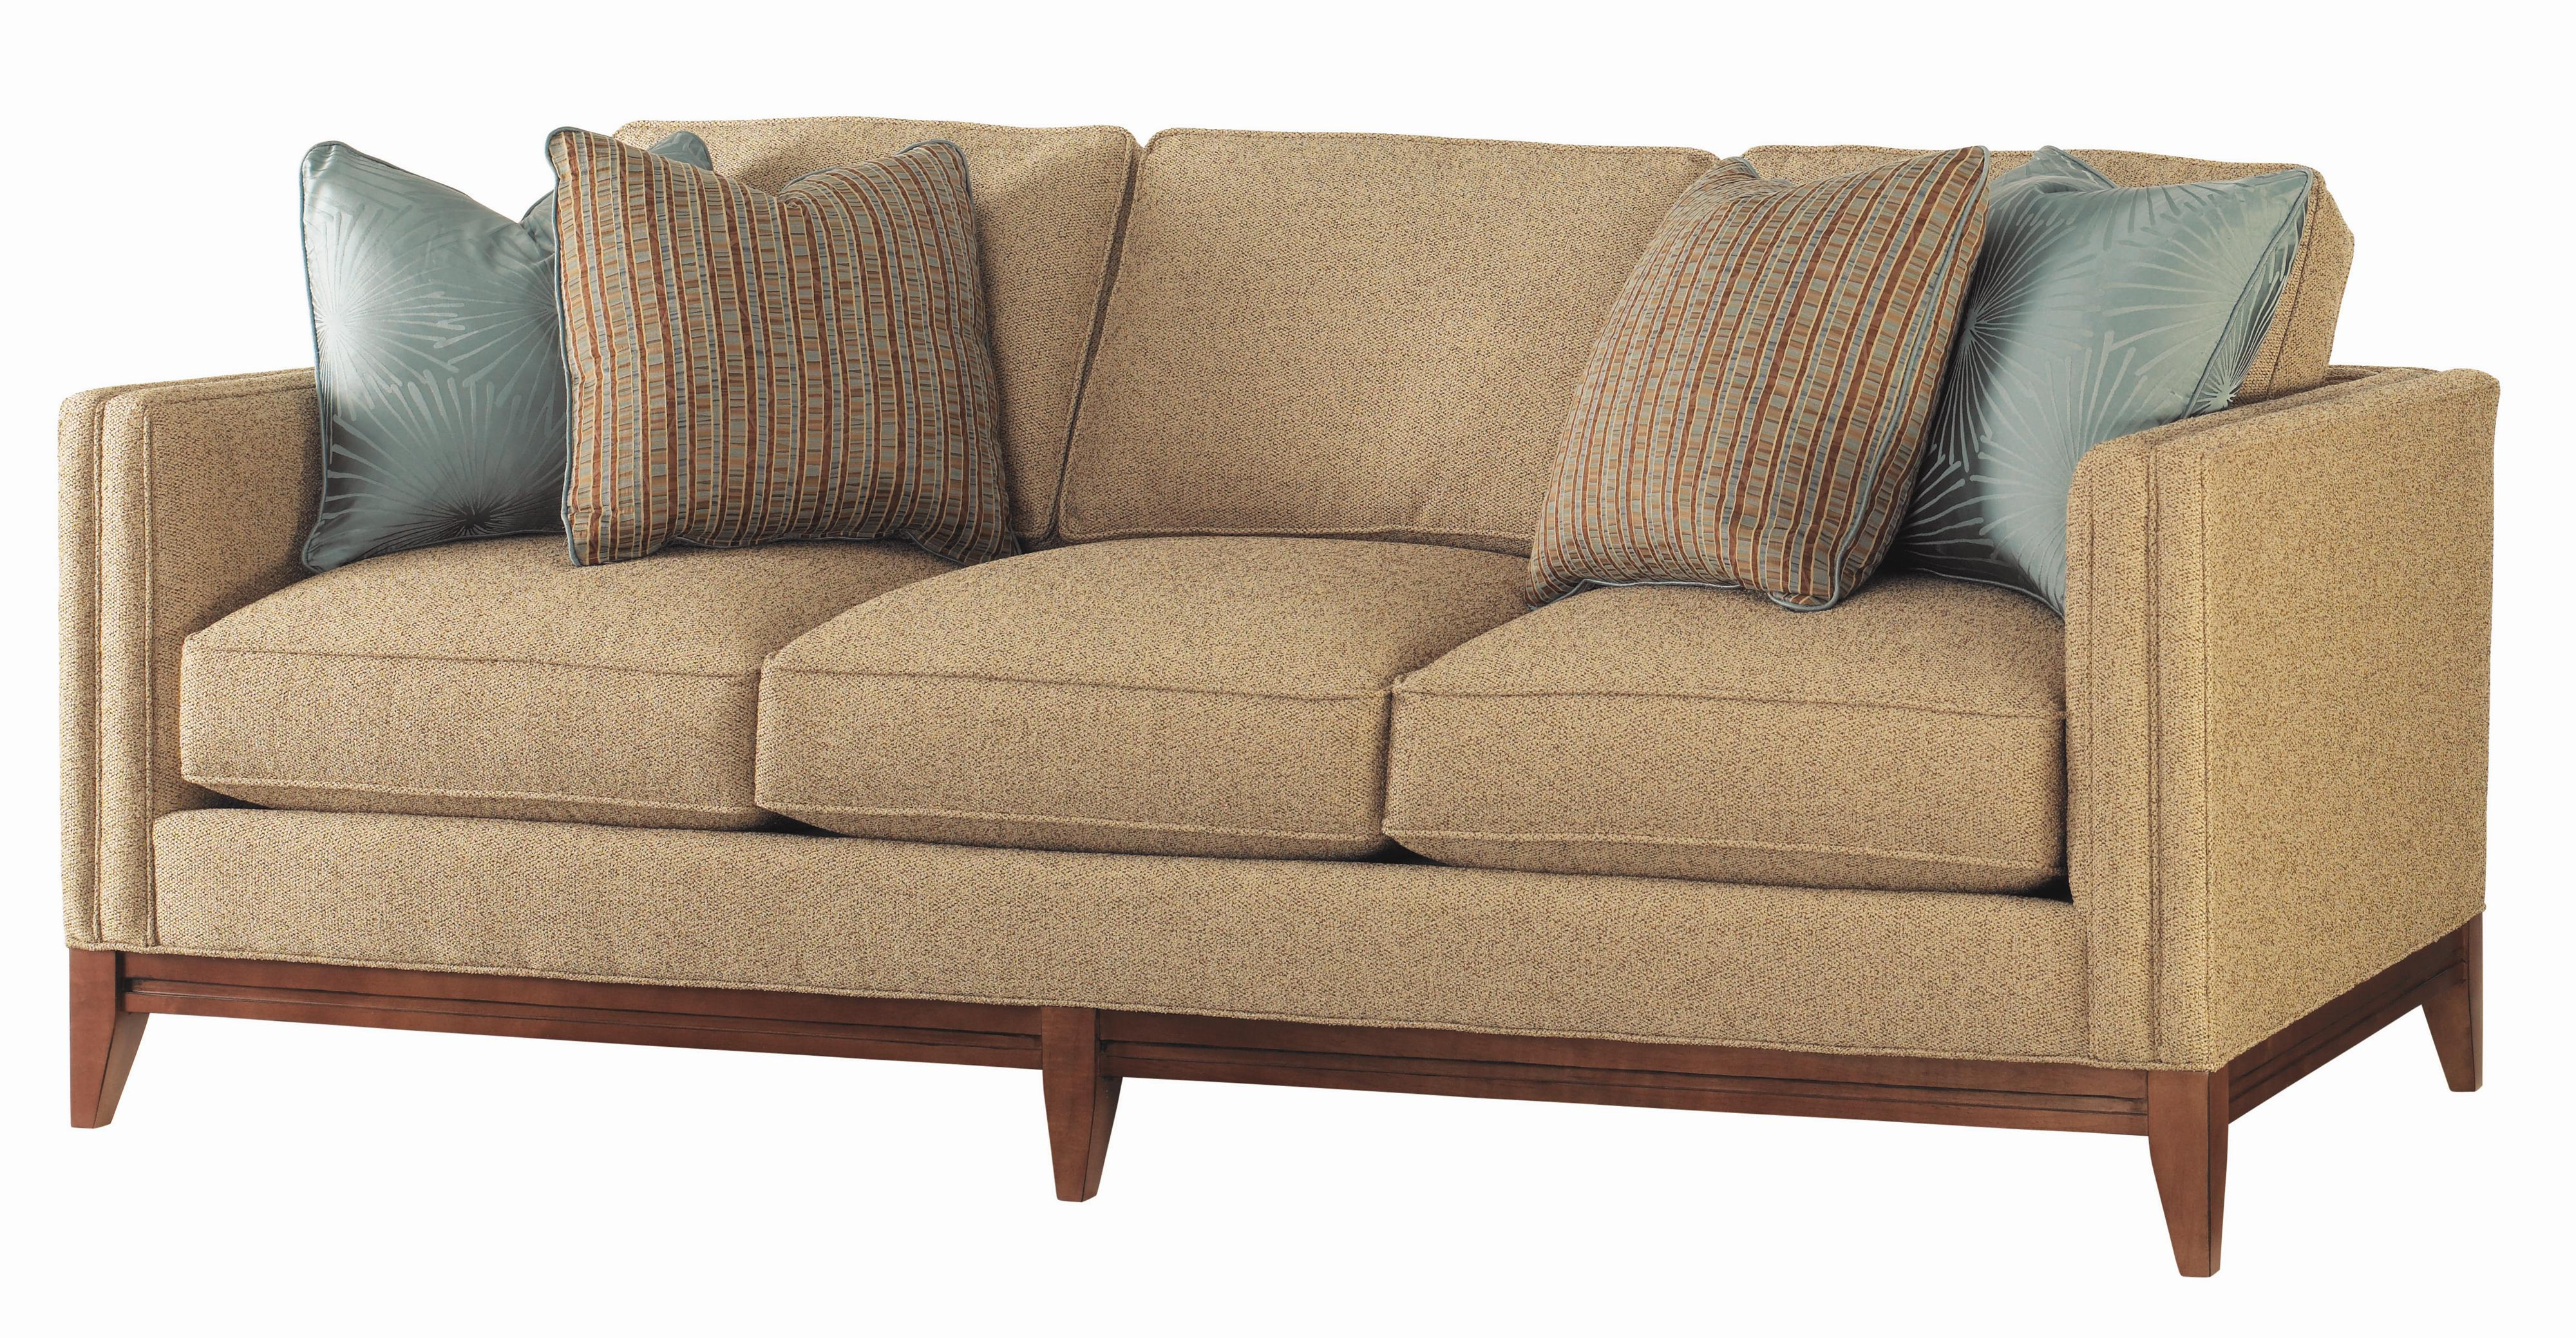 Ocean Club Ladera Sofa by Tommy Bahama Home at Baer's Furniture